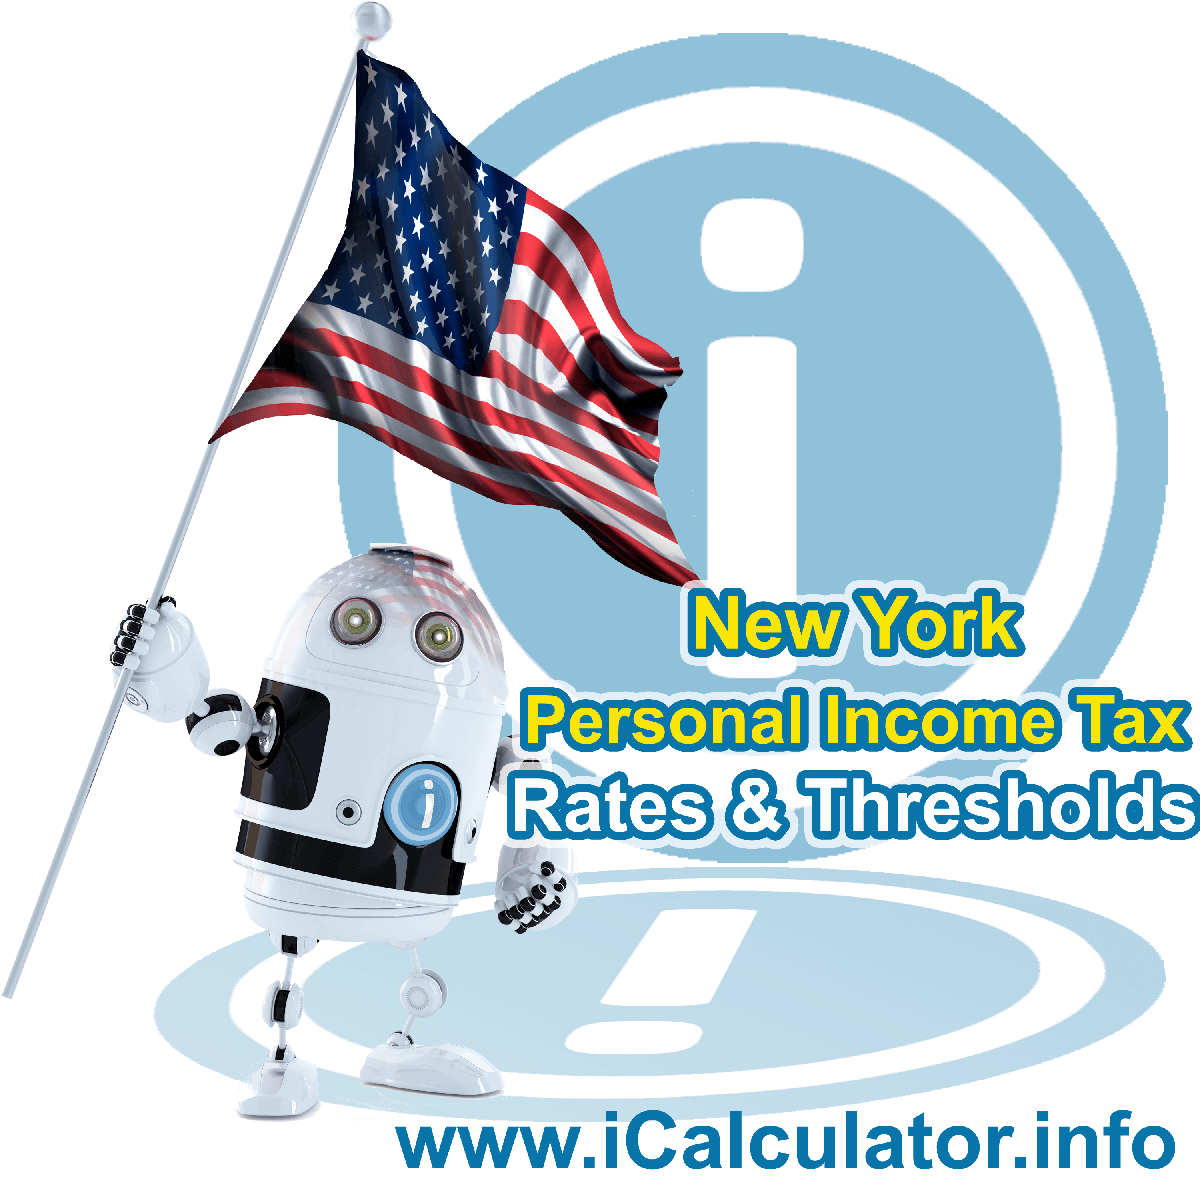 New York State Tax Tables 2019. This image displays details of the New York State Tax Tables for the 2019 tax return year which is provided in support of the 2019 US Tax Calculator